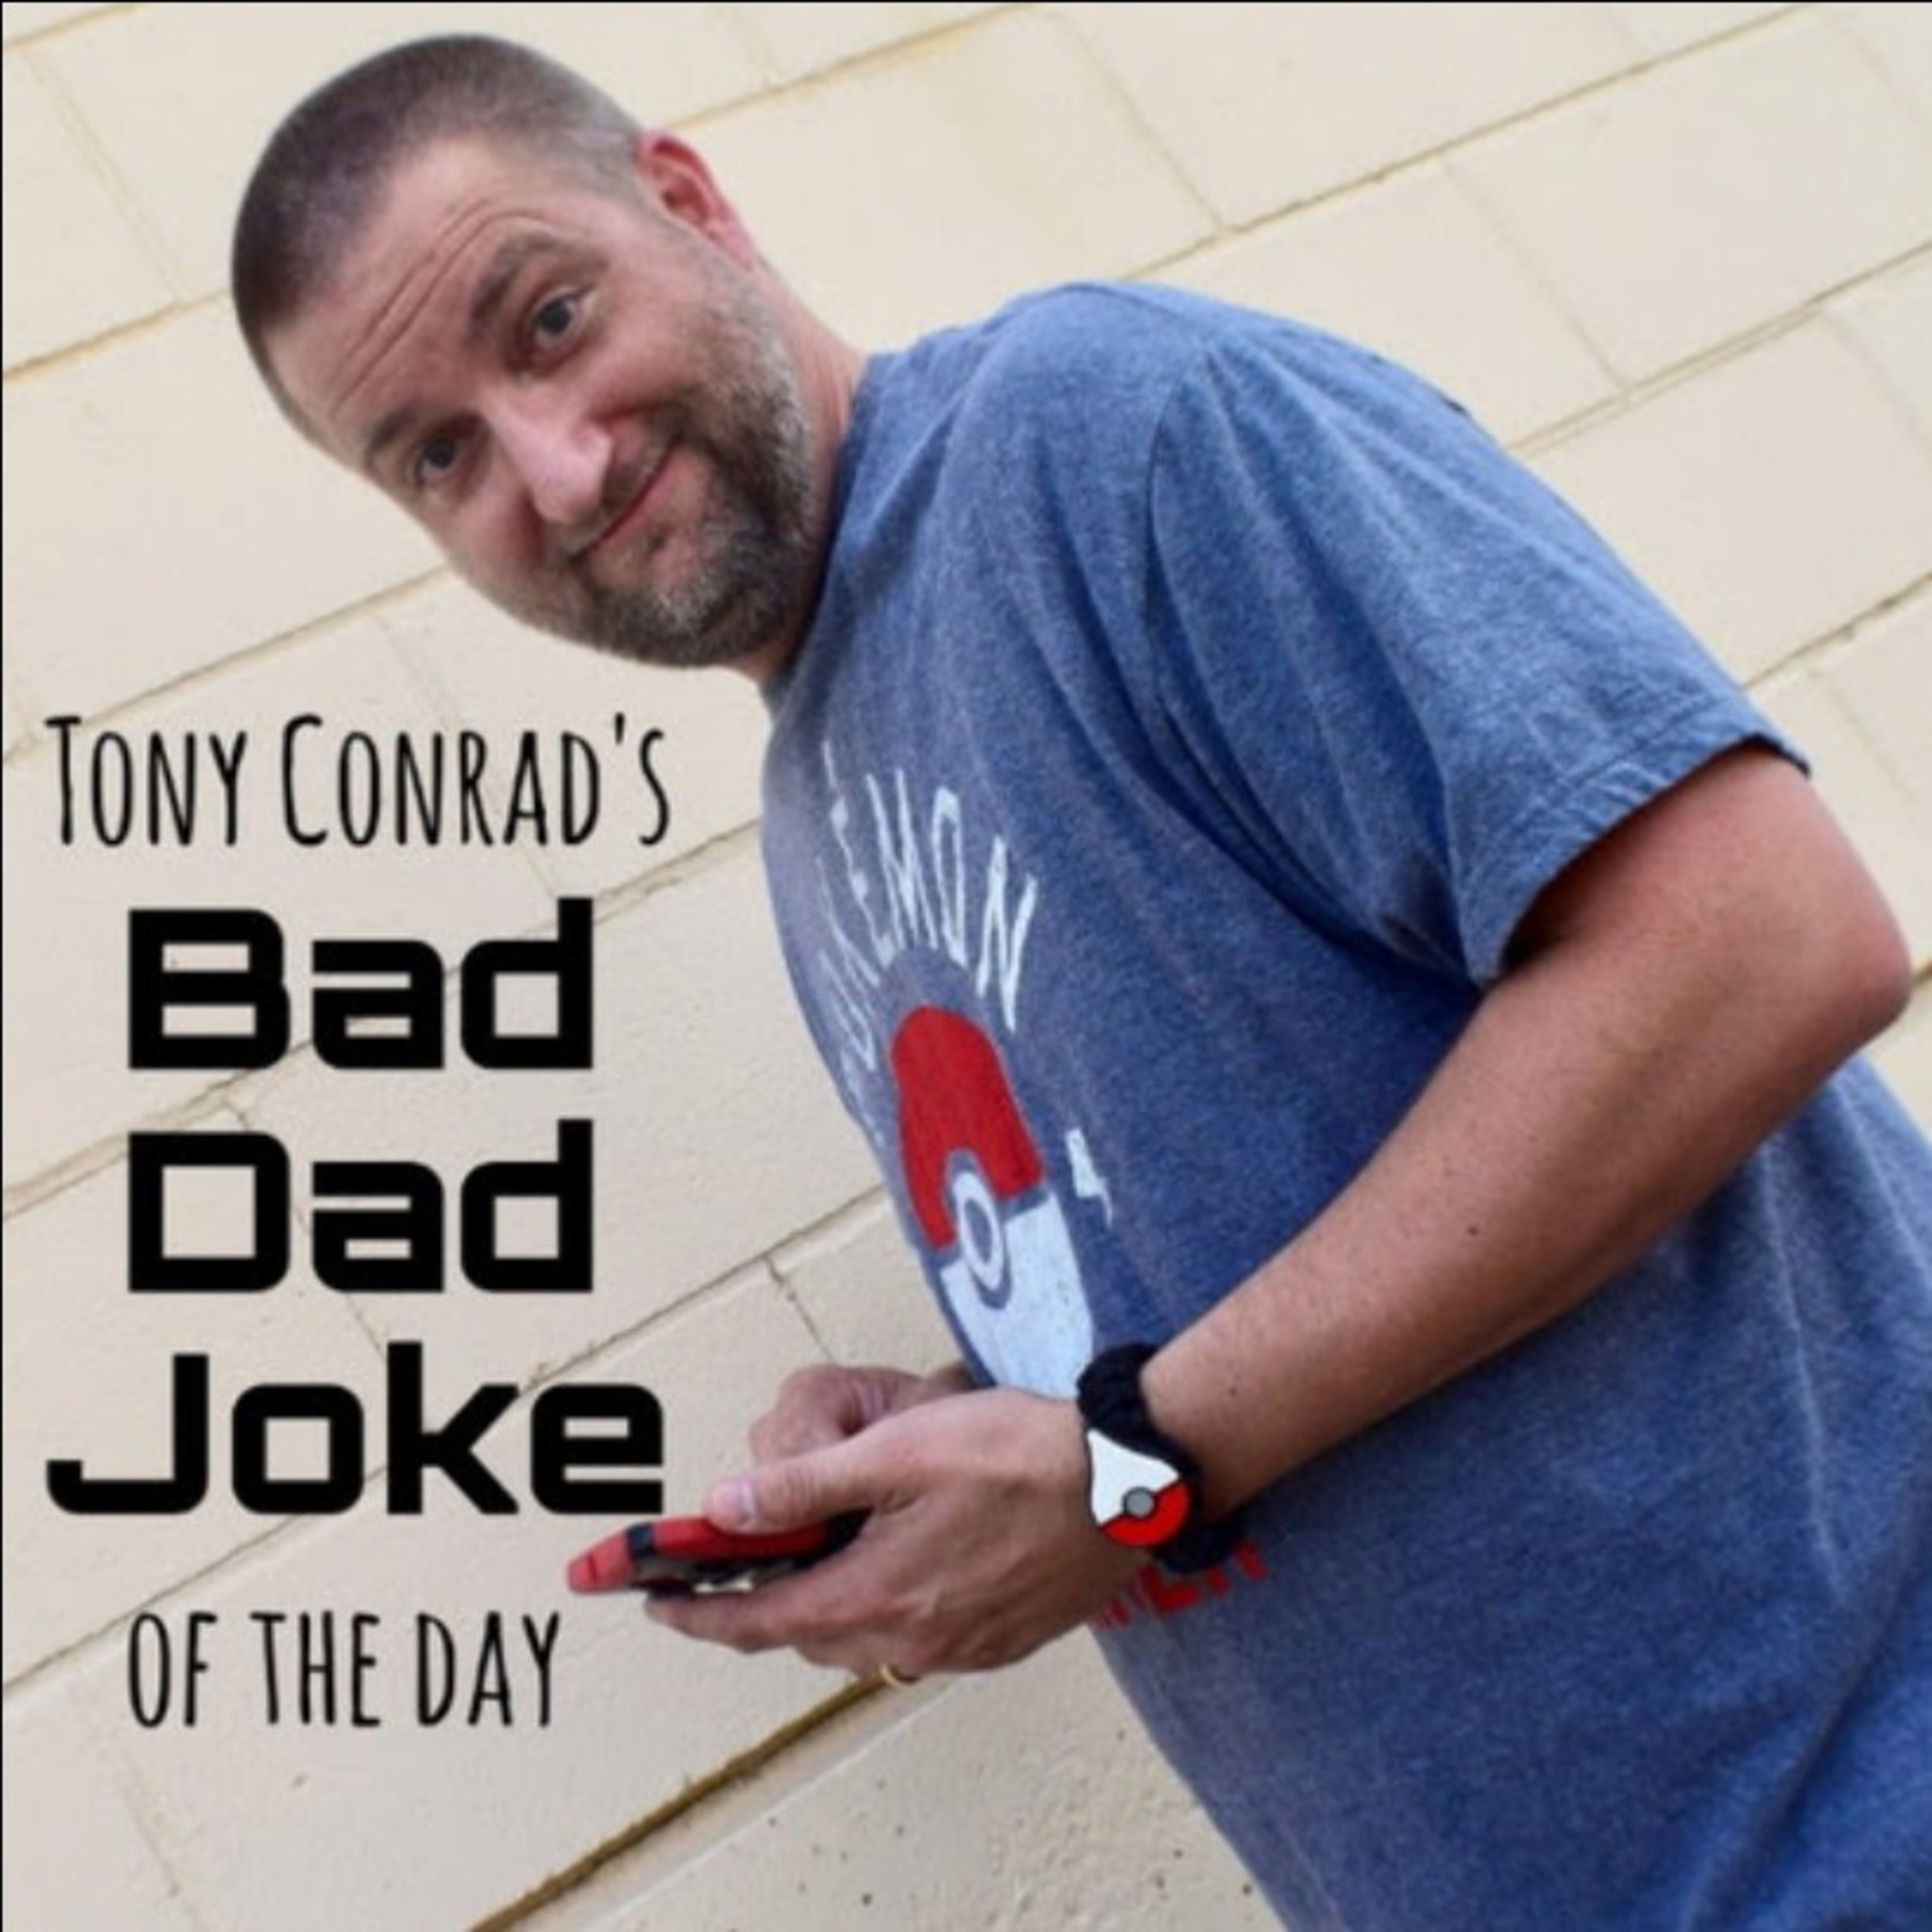 TONY CONRAD'S BAD DAD JOKE OF THE DAY FOR 6/18